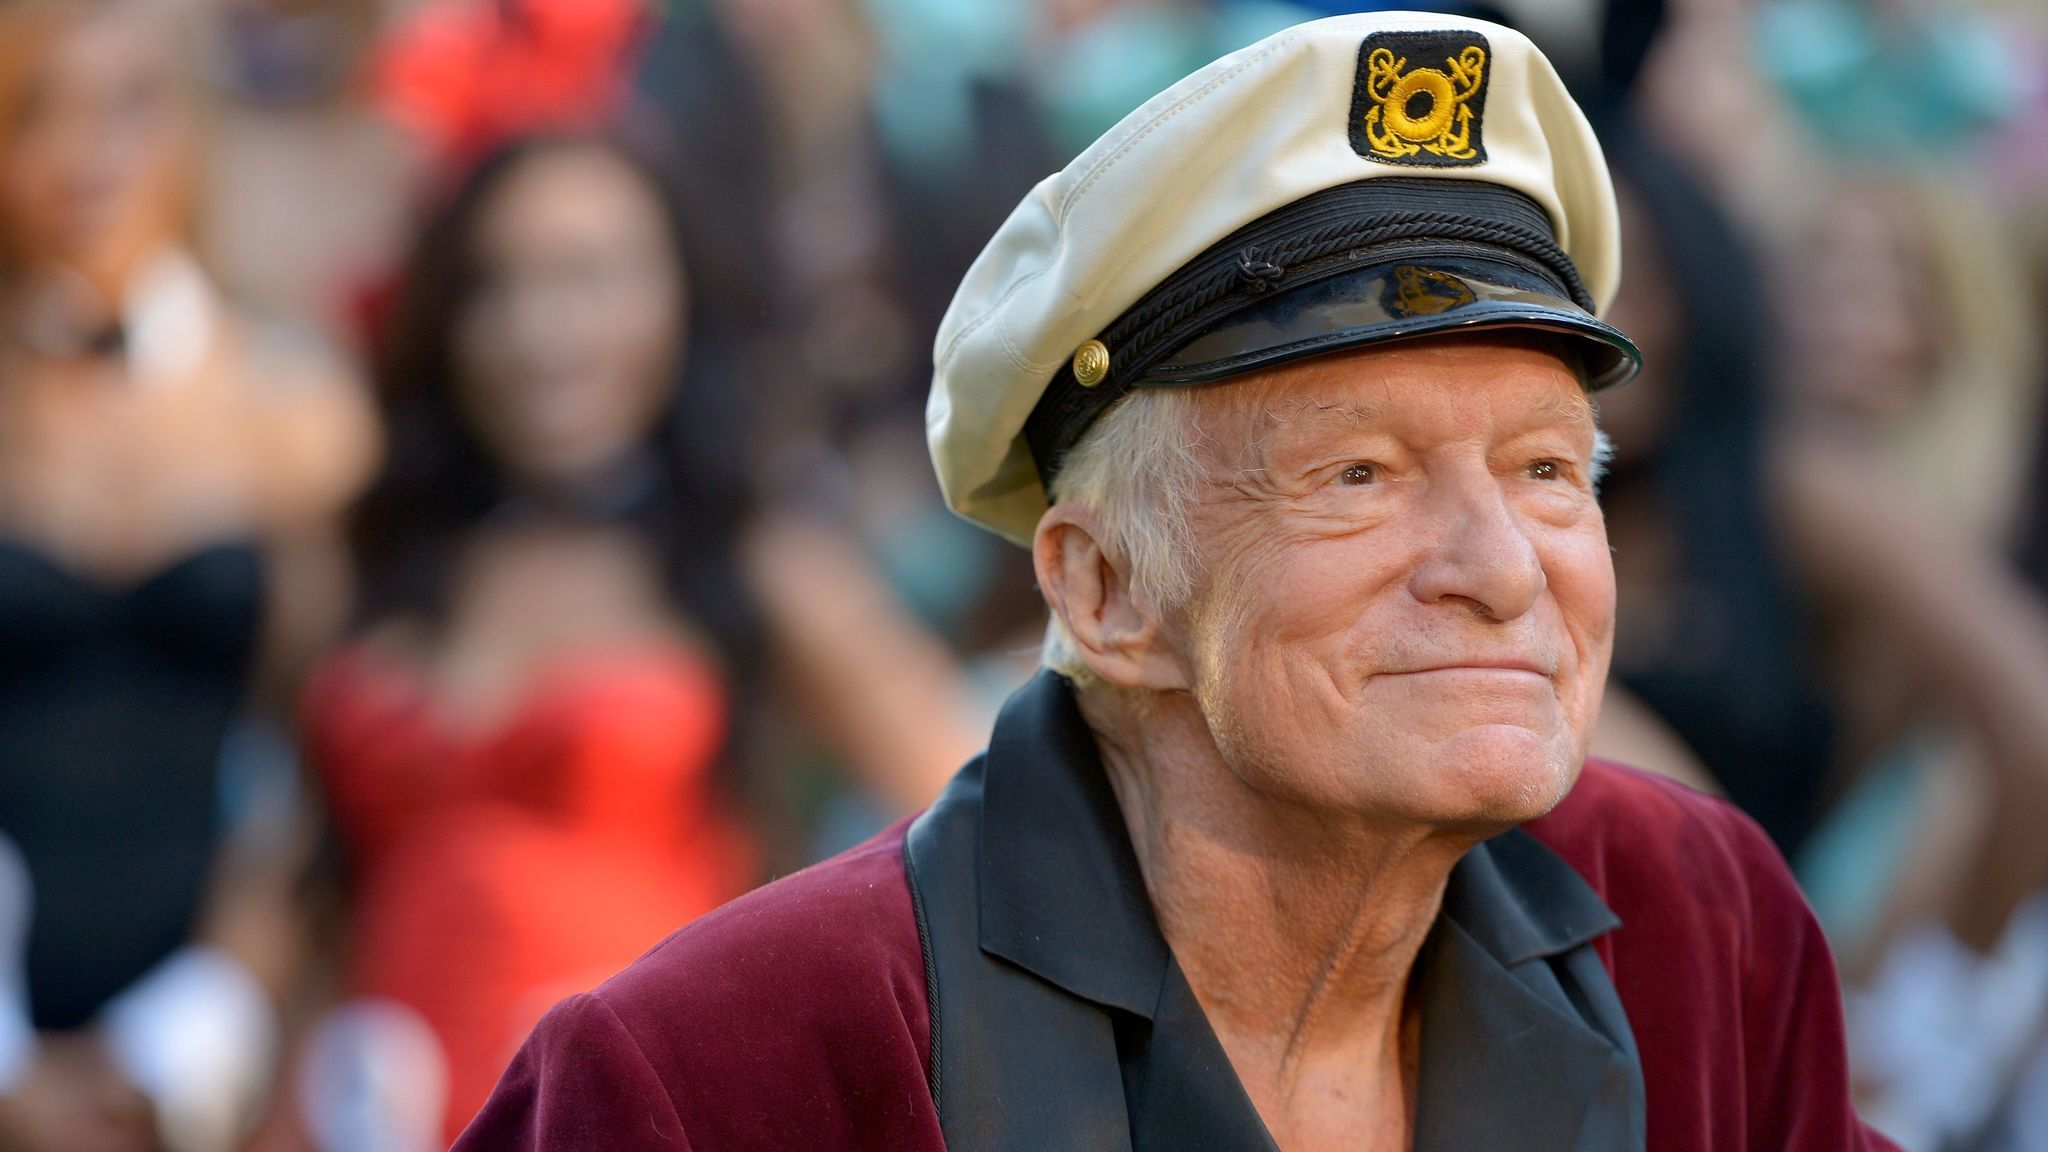 Playboy magazine founder Hugh Hefner died at age 91 on Wednesday at the Playboy Mansion in Los Angeles. He's seen here at Playboy's 60th anniversary celebration in 2014. (Charley Gallay / Getty Images for Playboy)